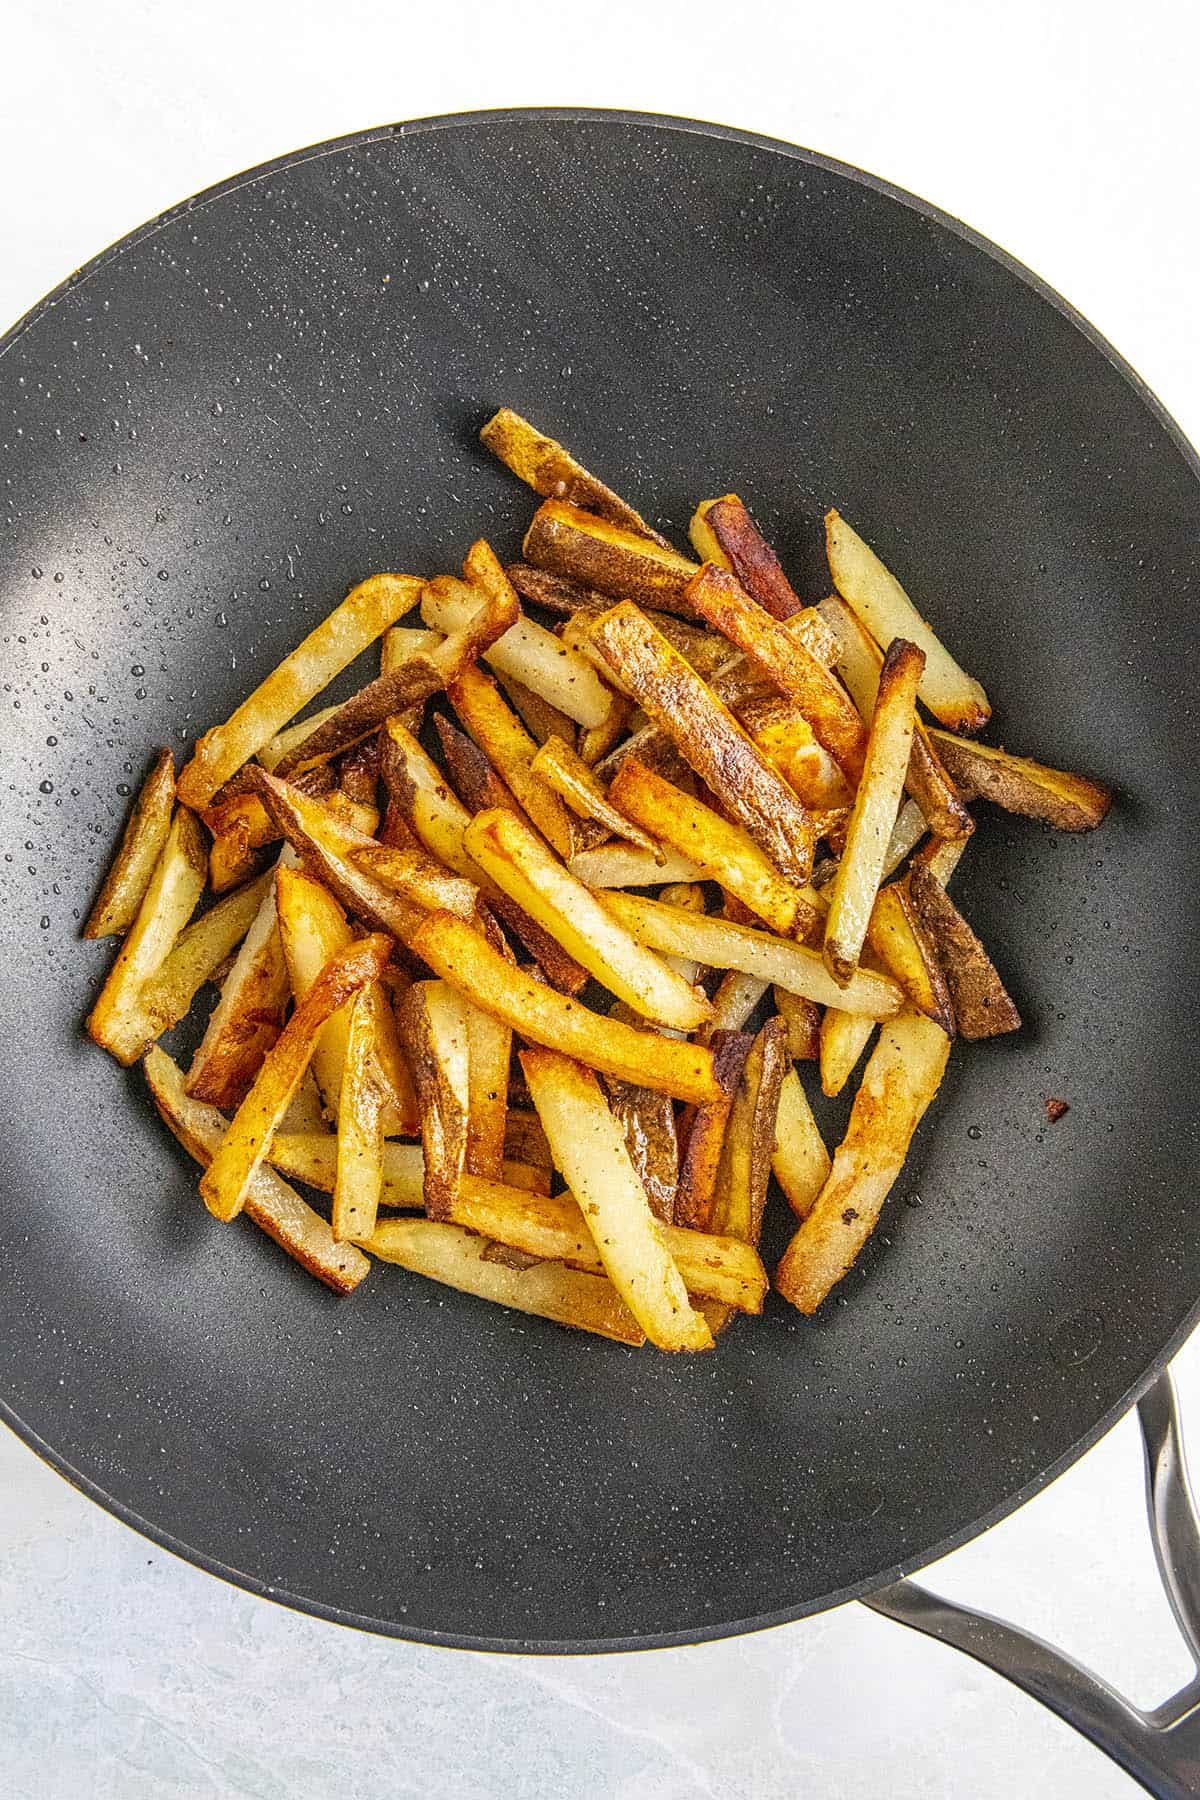 Stir frying the french fries in a hot pan with oil